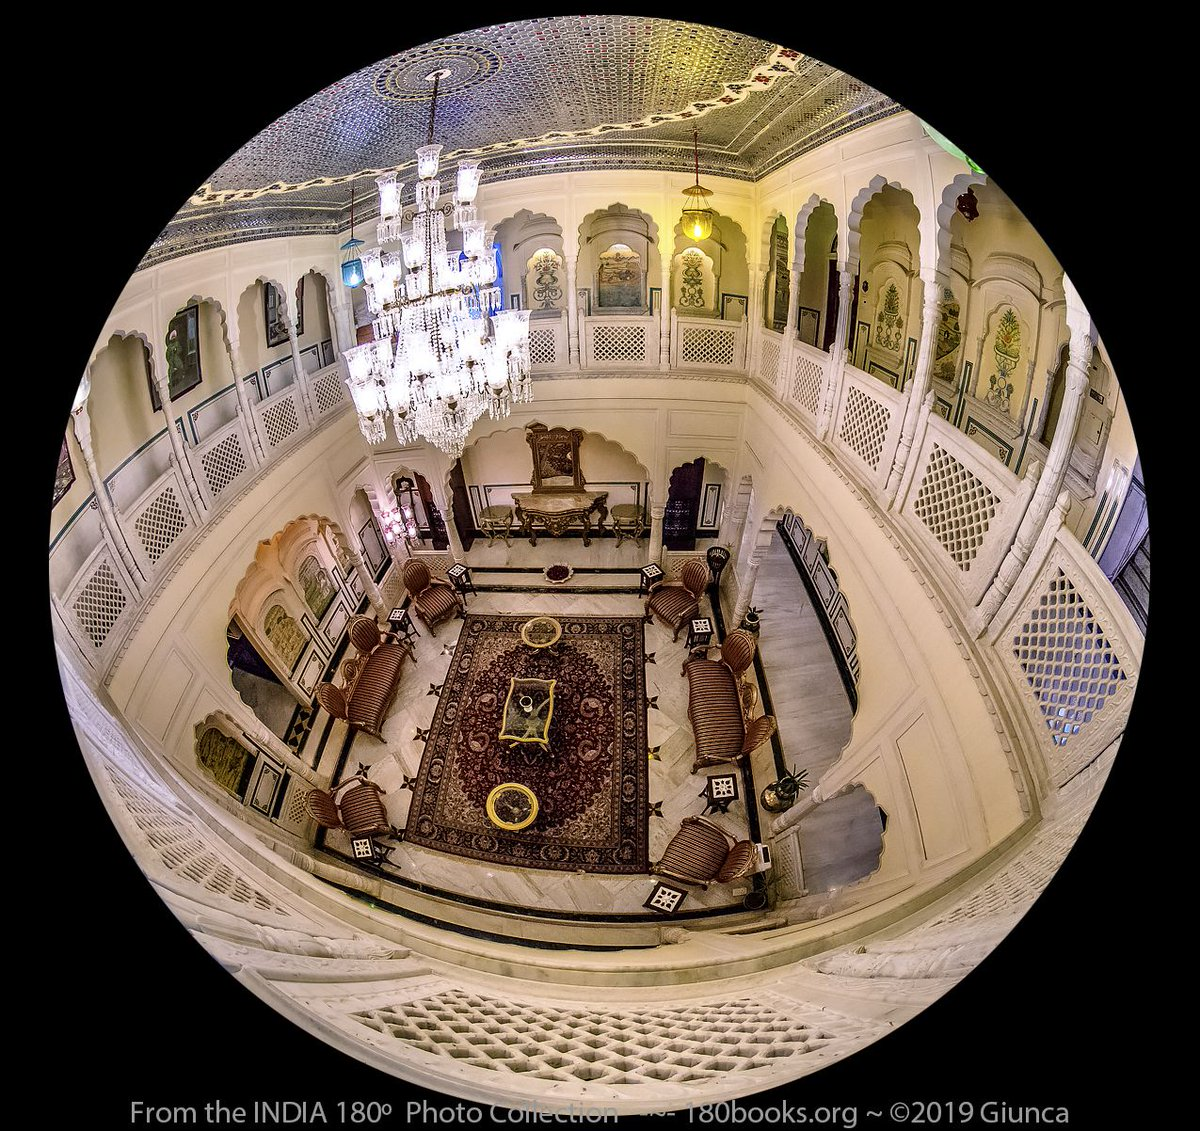 #INDIA180º #PhotoOfTheDay: Hotel Common Area Sitting Room ~ India -Not only is the scenery in India amazing, the heritage hotels are reasonably priced and palatial! #IncredibleIndia #180books #dailyphoto #ThePhotoHour @HapyIndia #FotoRshot #BacklightWorld #InteriorDesign